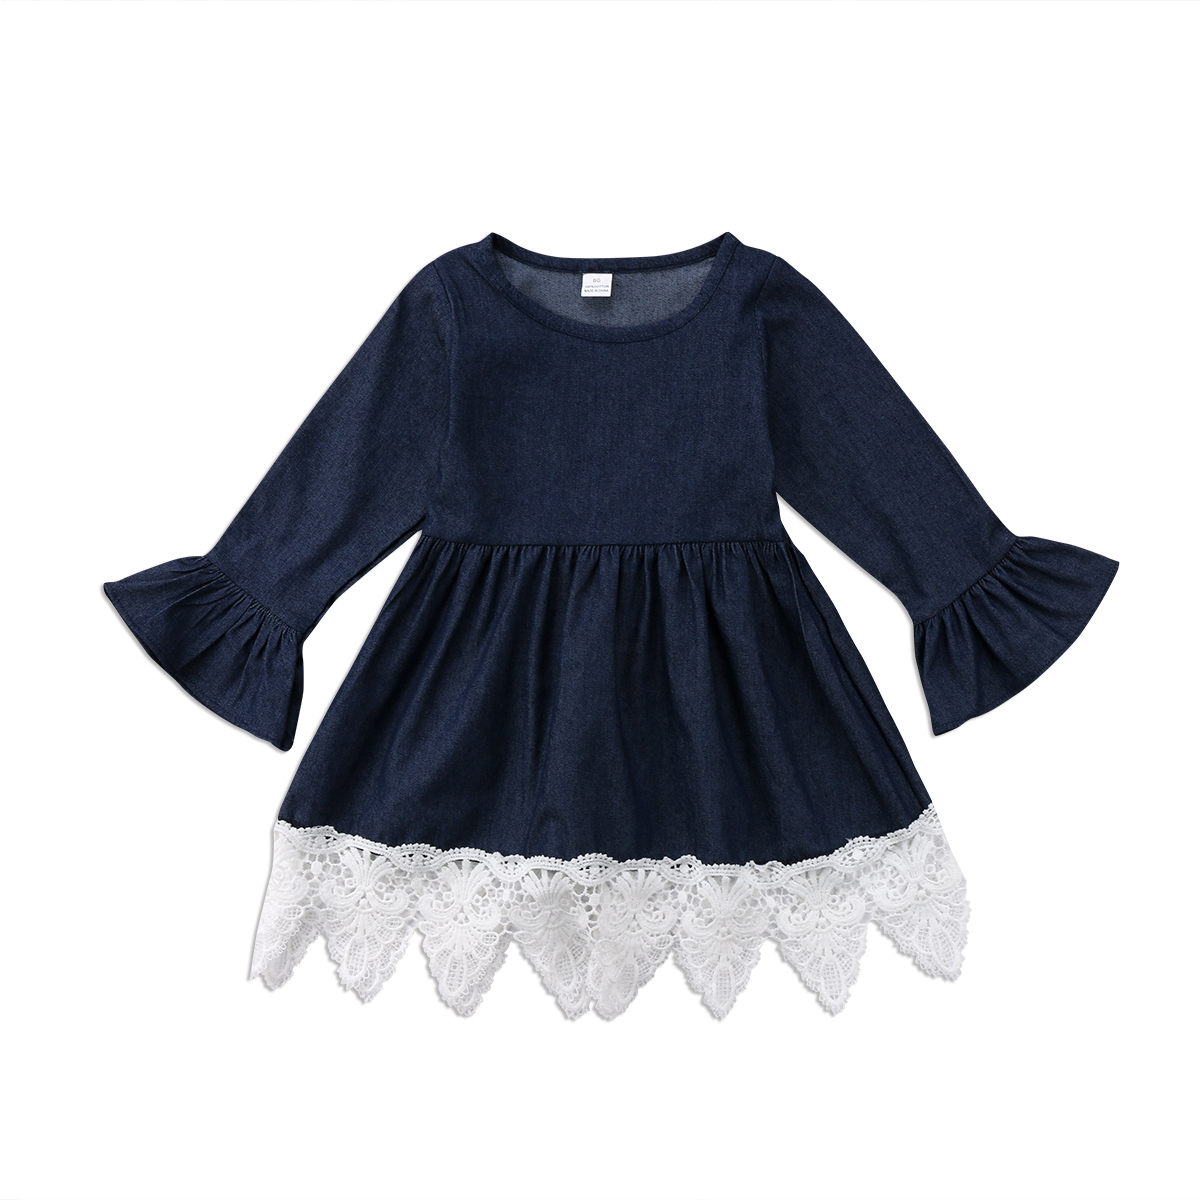 Infant Toddler Kids Girls Clothing Dress Denim Ruffles Long Sleeve Lace Princess Dresses Outfits Mini Girl 1-7T ems dhl free shipping toddler little girl s 2017 princess ruffles layers sleeveless lace dress summer style suspender